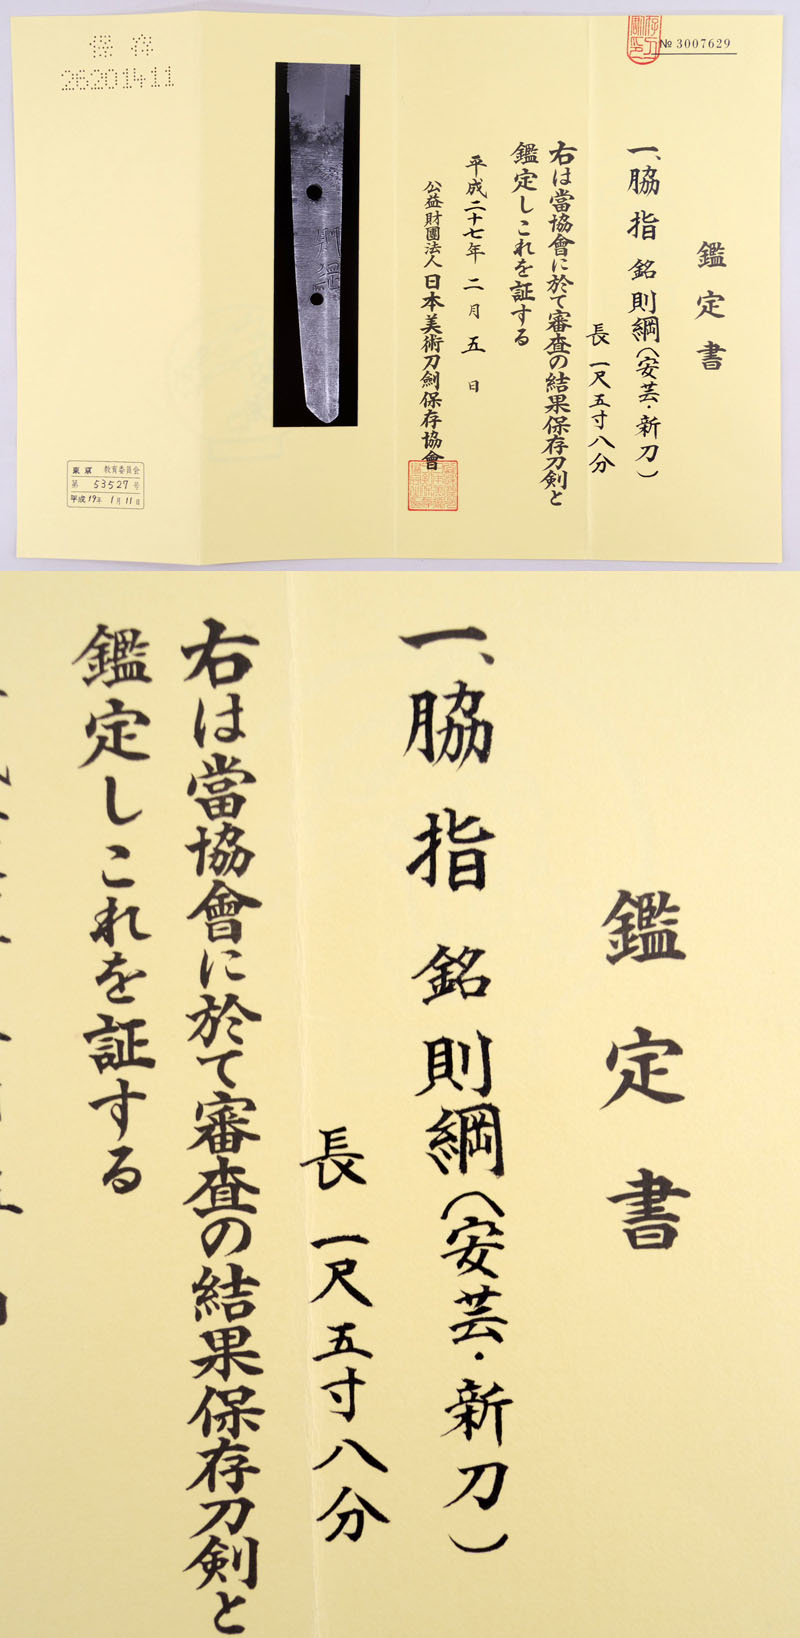 則綱 Picture of Certificate